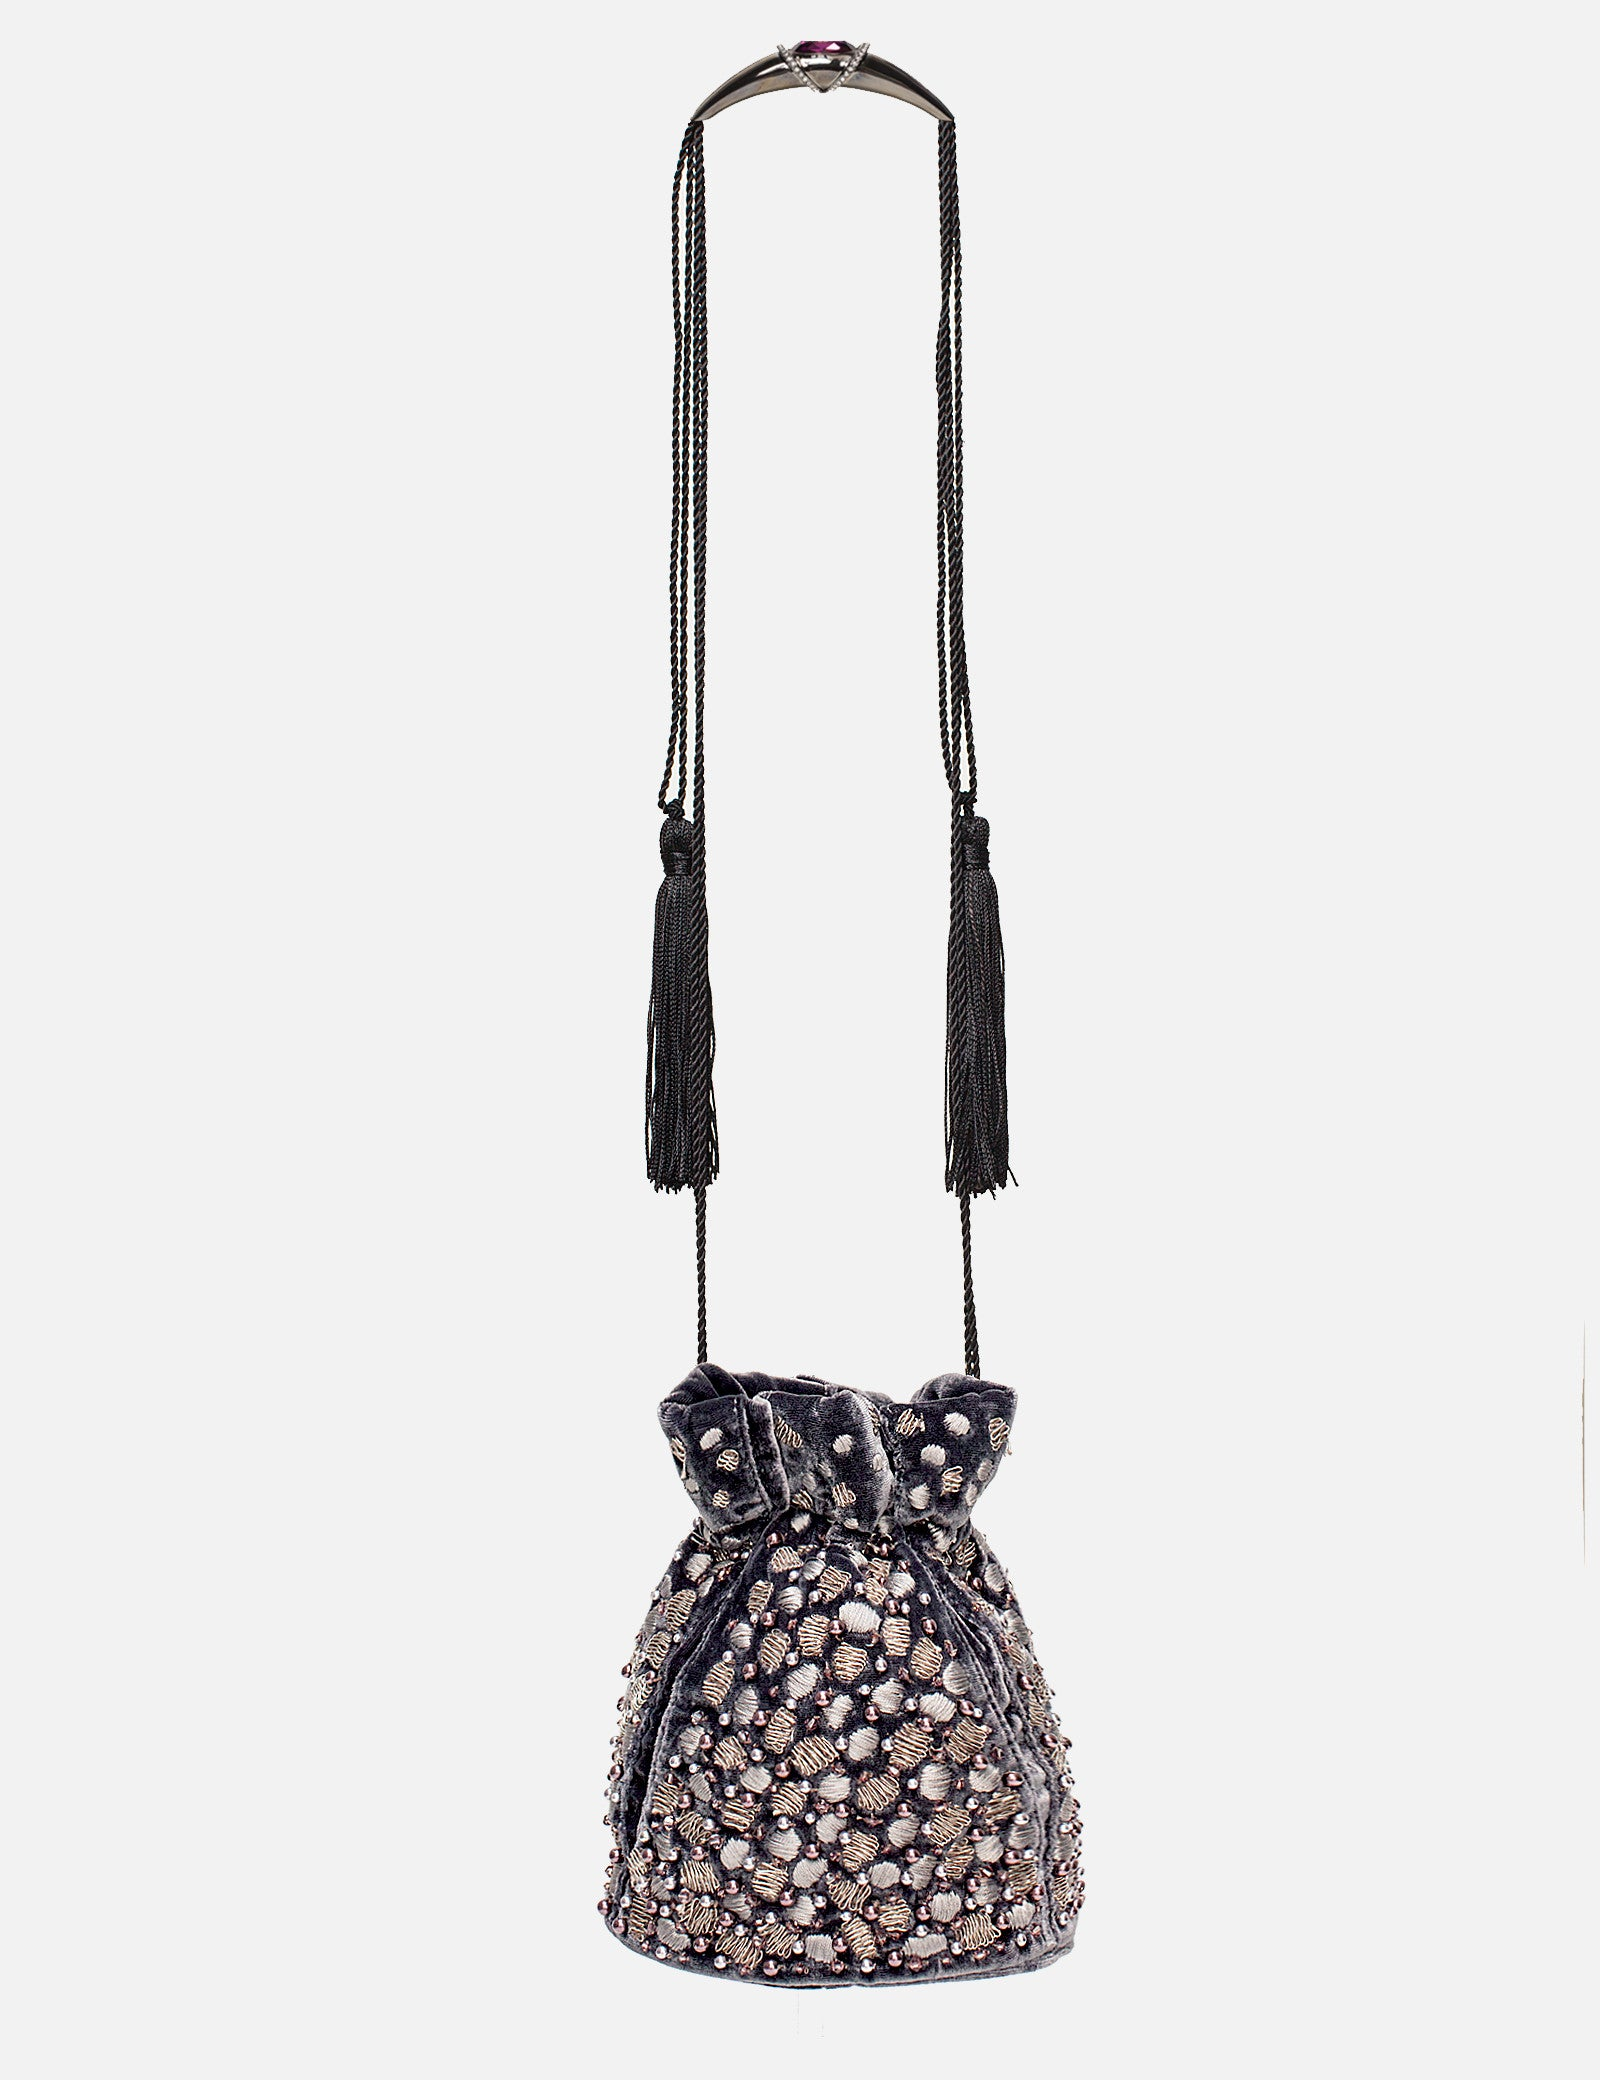 Khirma New York Unique Luxury Designer Velvet Gray Pouch with Embroidered Swarovski Crystals. The perfect evening pouch. Designed to to be worn on the shoulder or as a top handle with an adjustable satin drawstring. 15% of all proceeds will go to the Youngarts foundation.